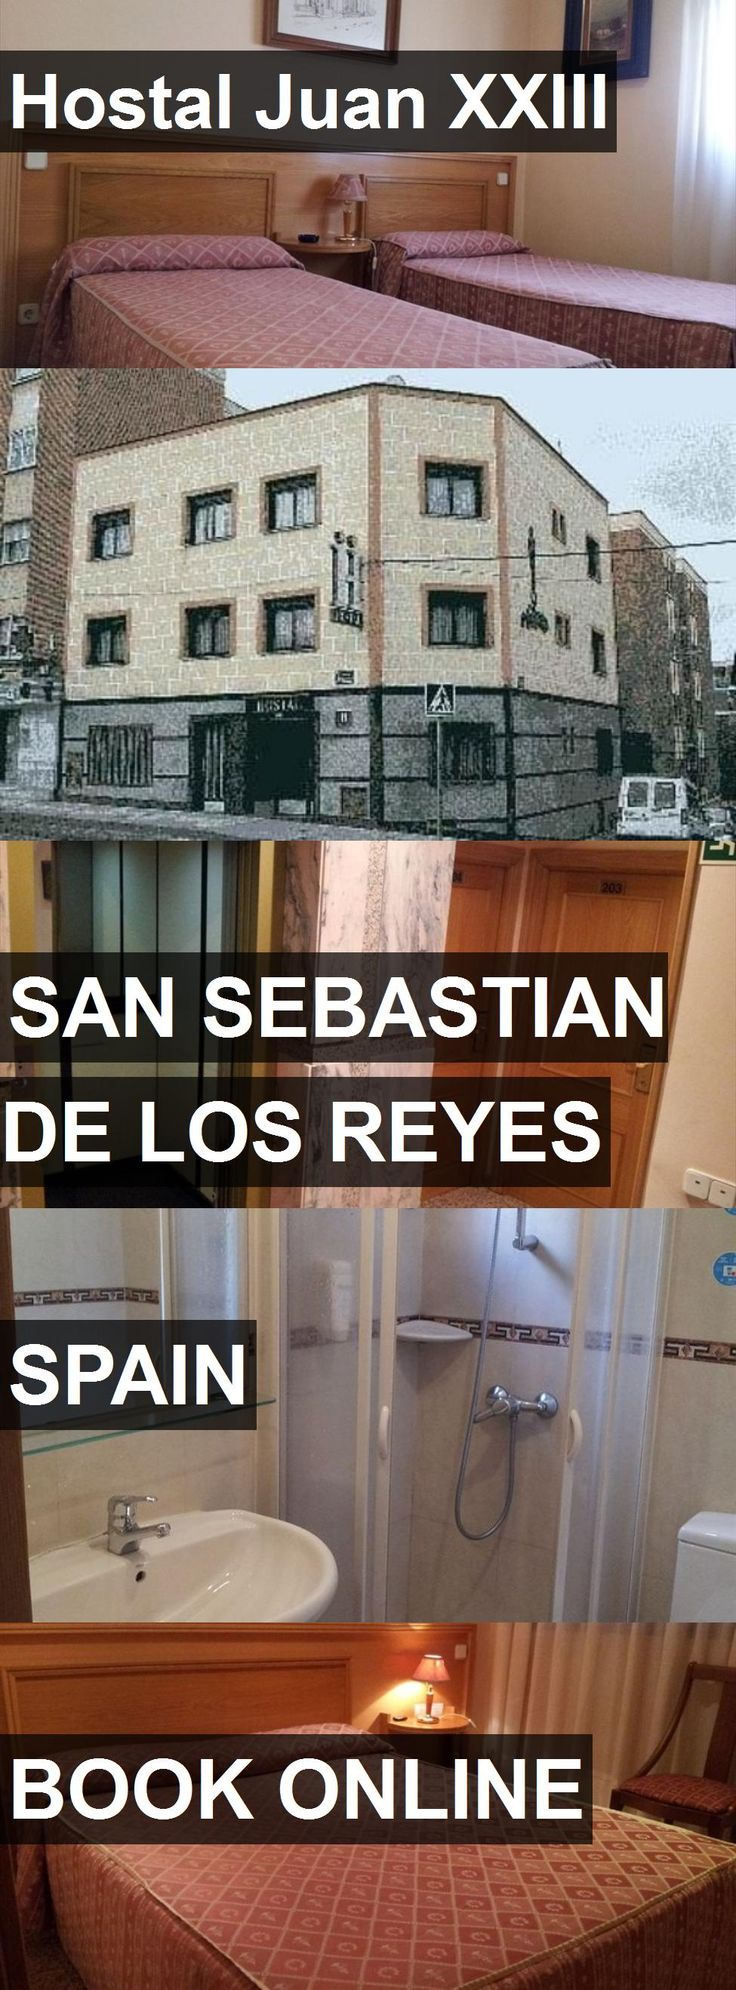 Hotel Hostal Juan XXIII in San Sebastian de los Reyes, Spain. For more information, photos, reviews and best prices please follow the link. #Spain #SanSebastiandelosReyes #travel #vacation #hotel